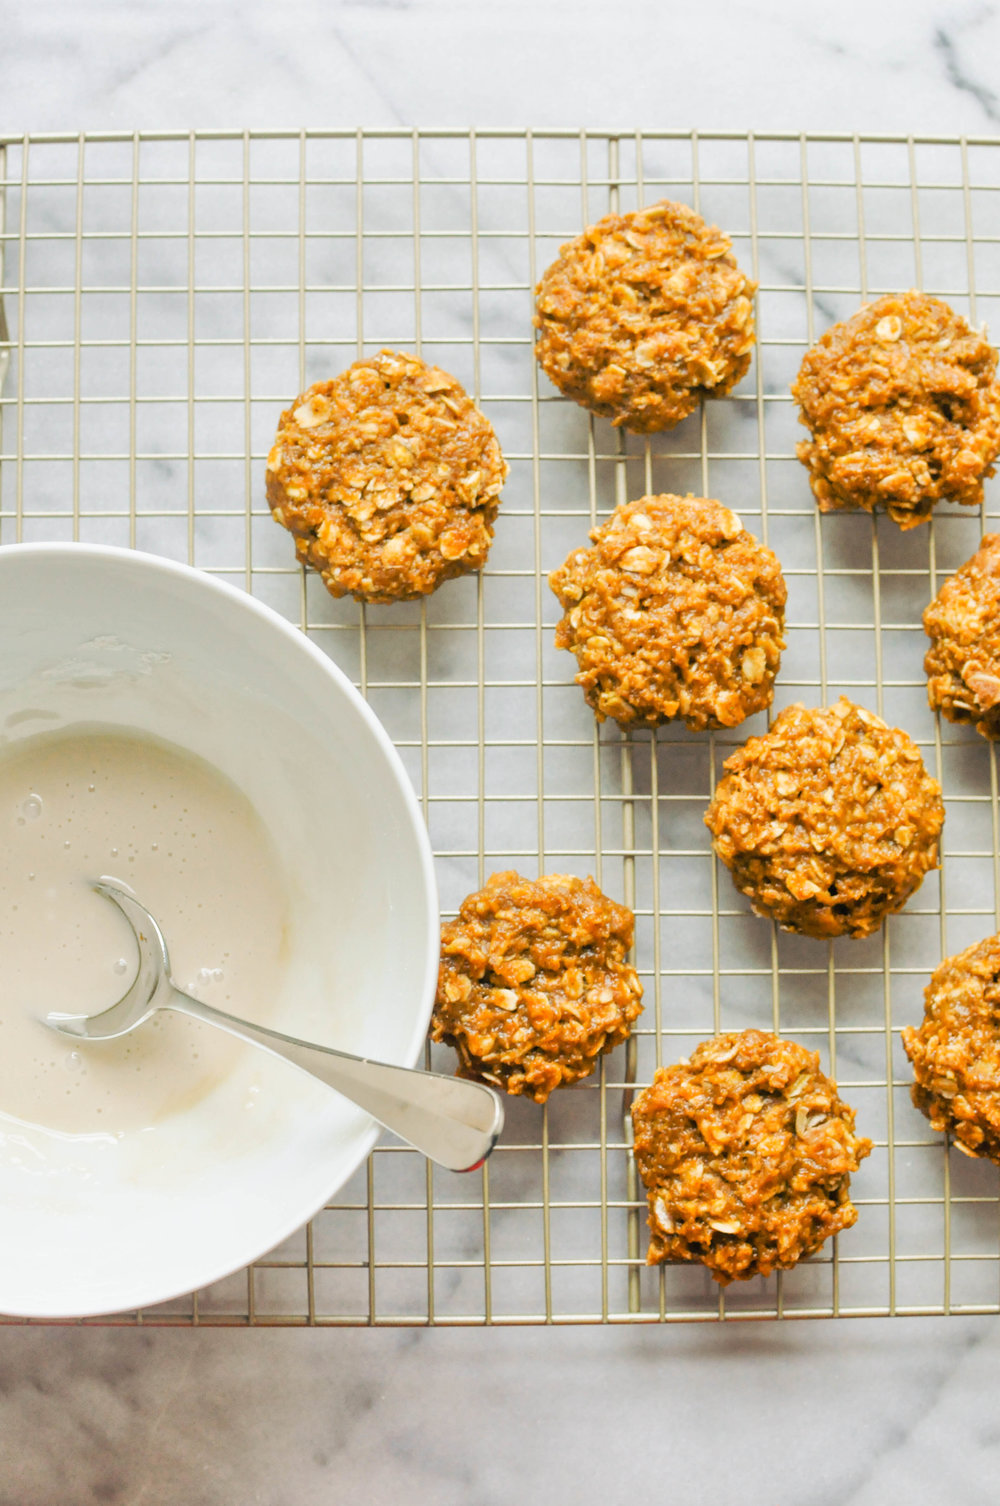 Healthier Pumpkin Spice Cookies - a delicious, fall dessert or snack | This Healthy Table